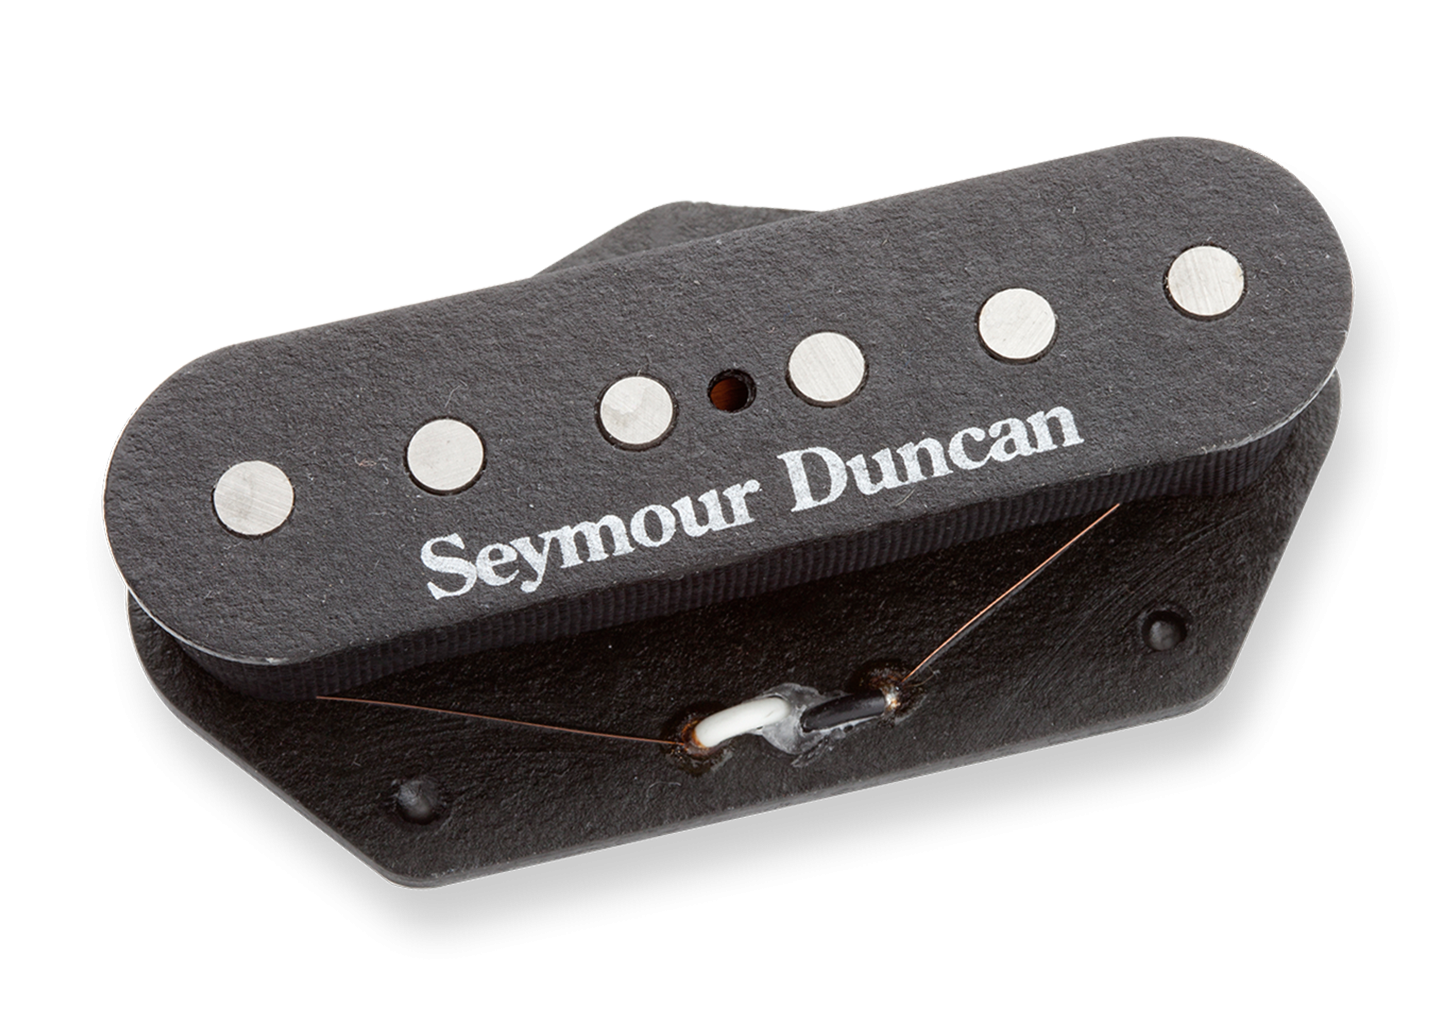 Seymour Duncan Hot Tele - STL-2 Bridge